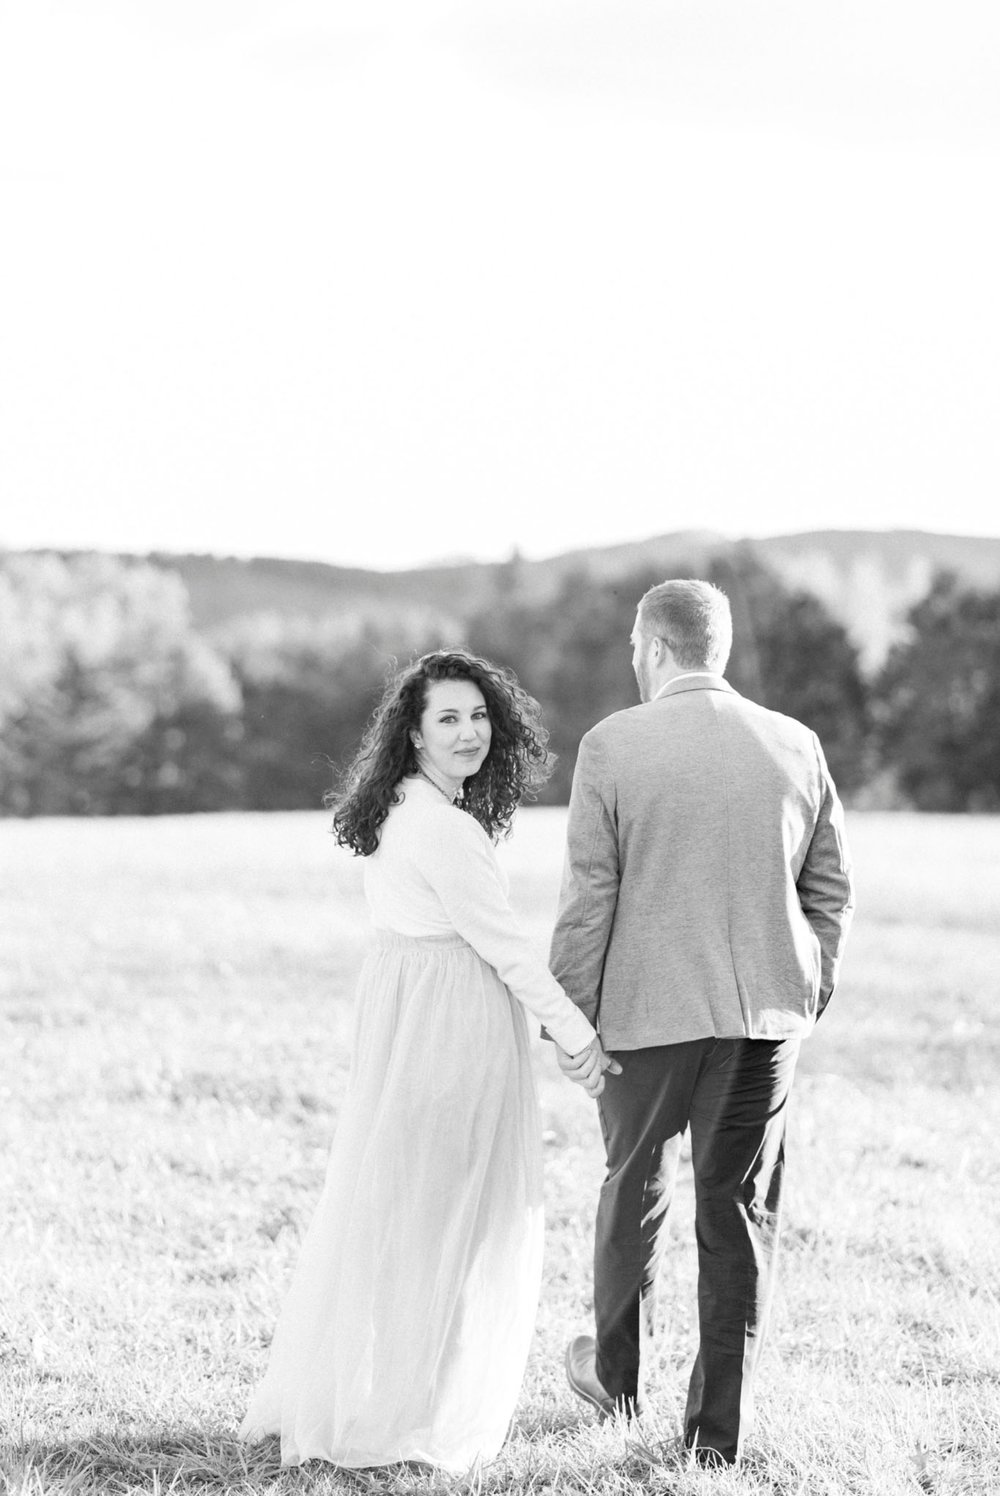 SorellaFarms_EngagementSession_VirginiaweddingPhotographer 38.jpg